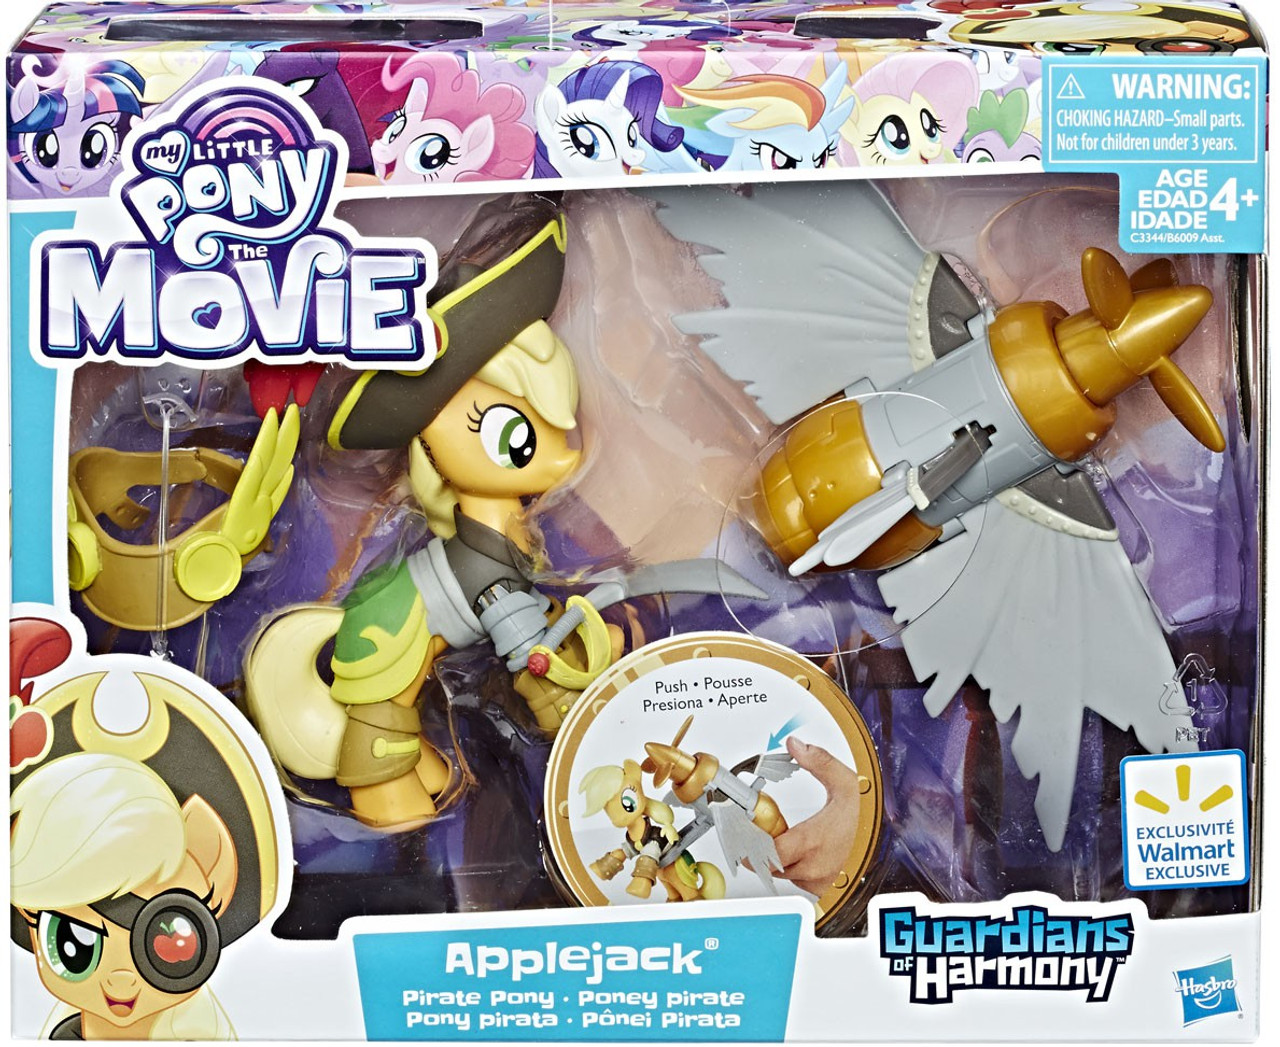 6eb7c7e07a4 My Little Pony Guardians of Harmony Applejack Figure Hasbro Toys ...